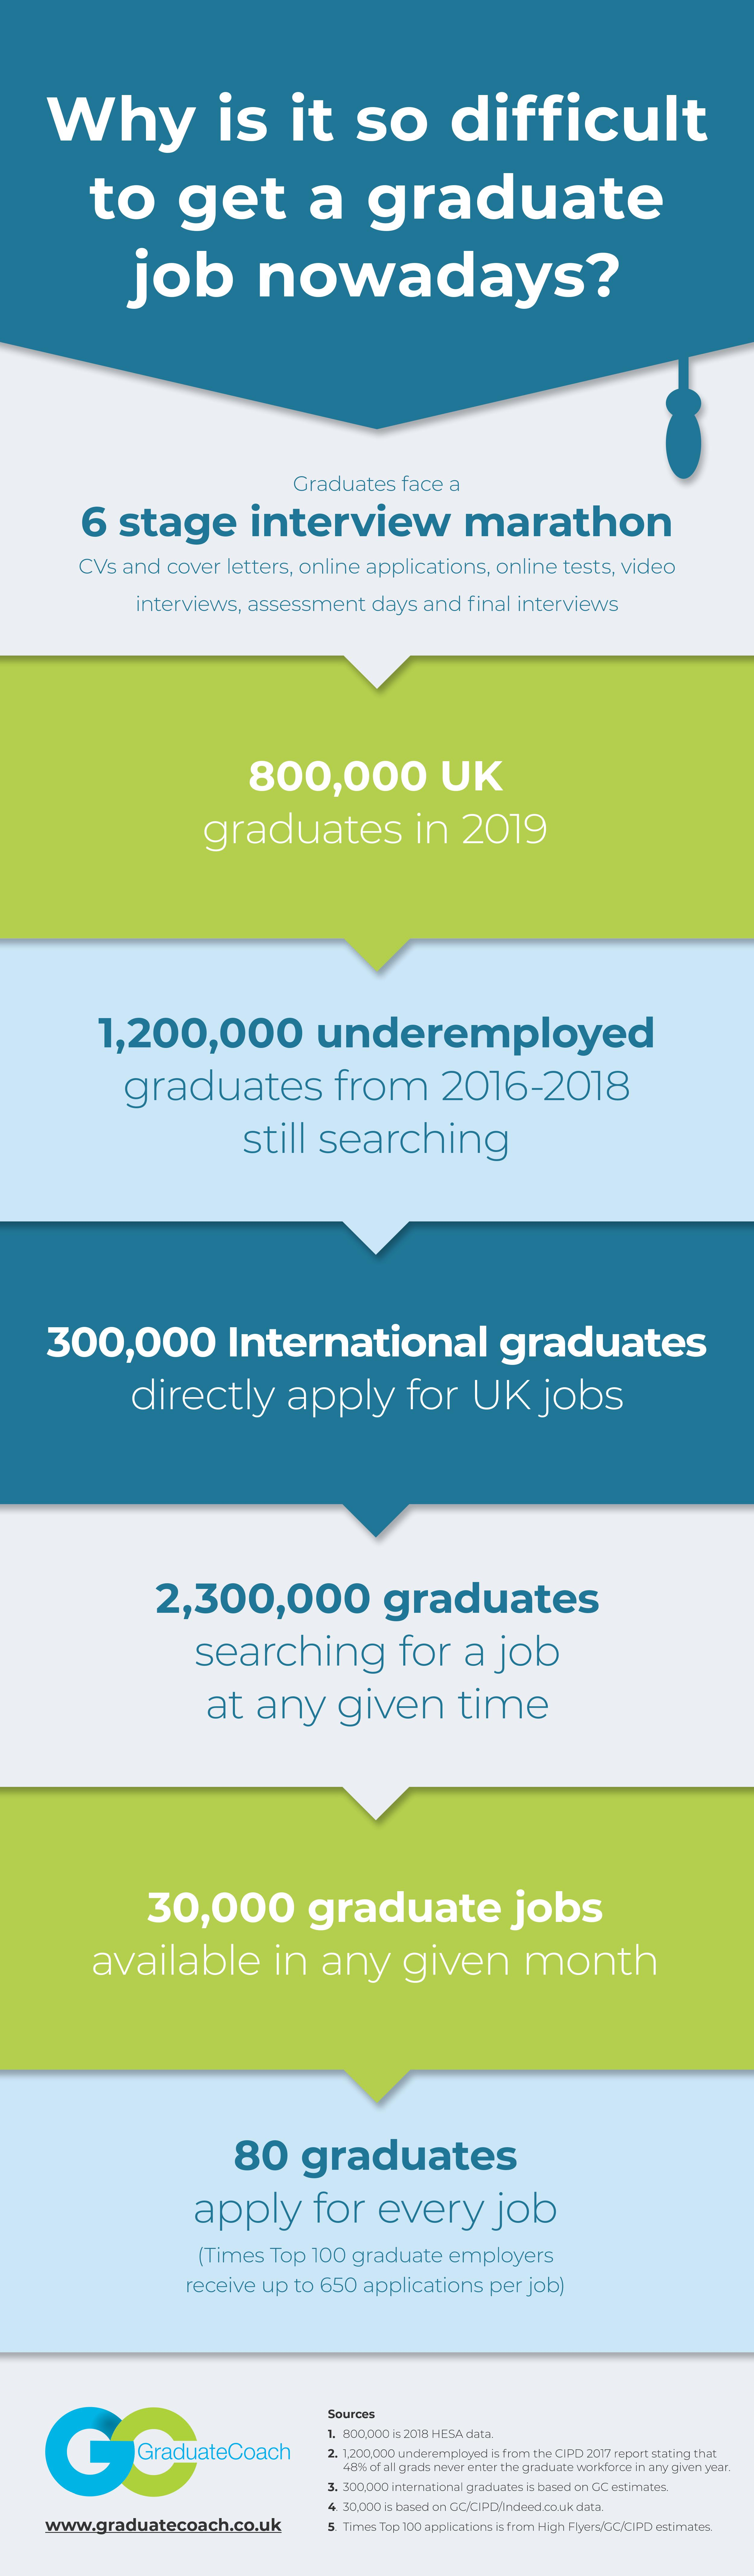 Infographic from Graduate Coach about the challenges graduates face in securing a job.